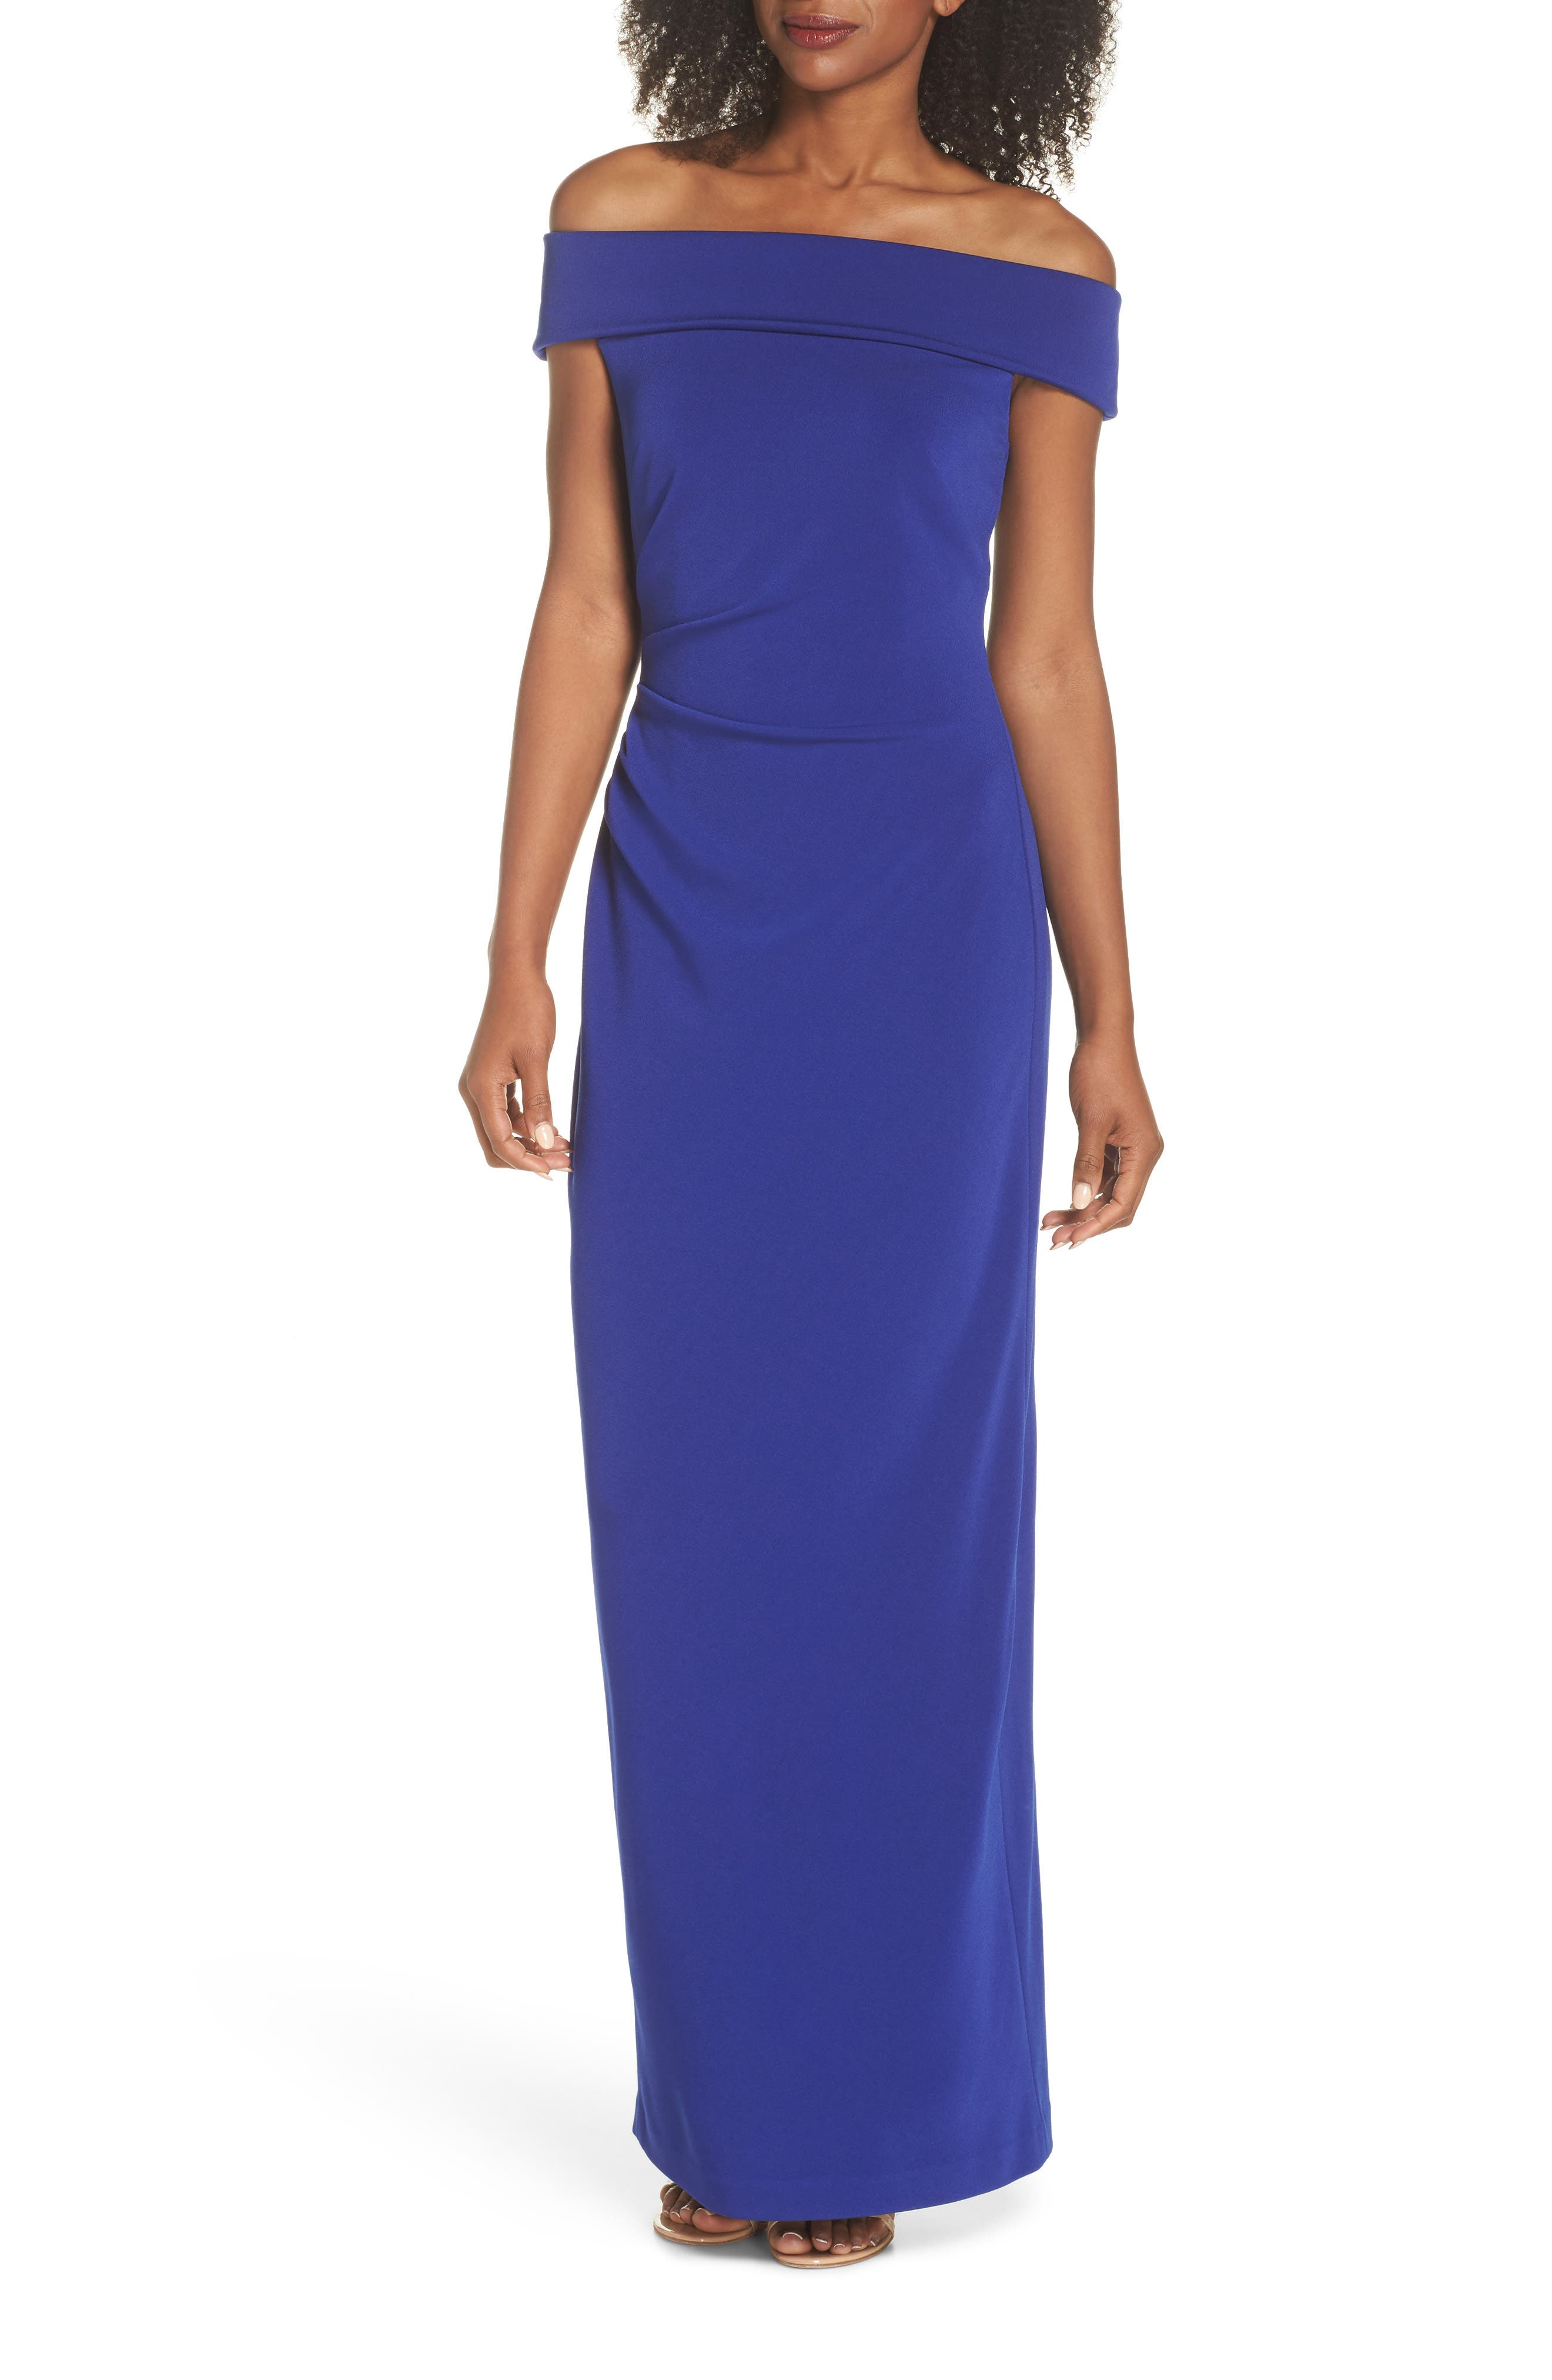 Off the Shoulder Gown,                             Main thumbnail 1, color,                             430